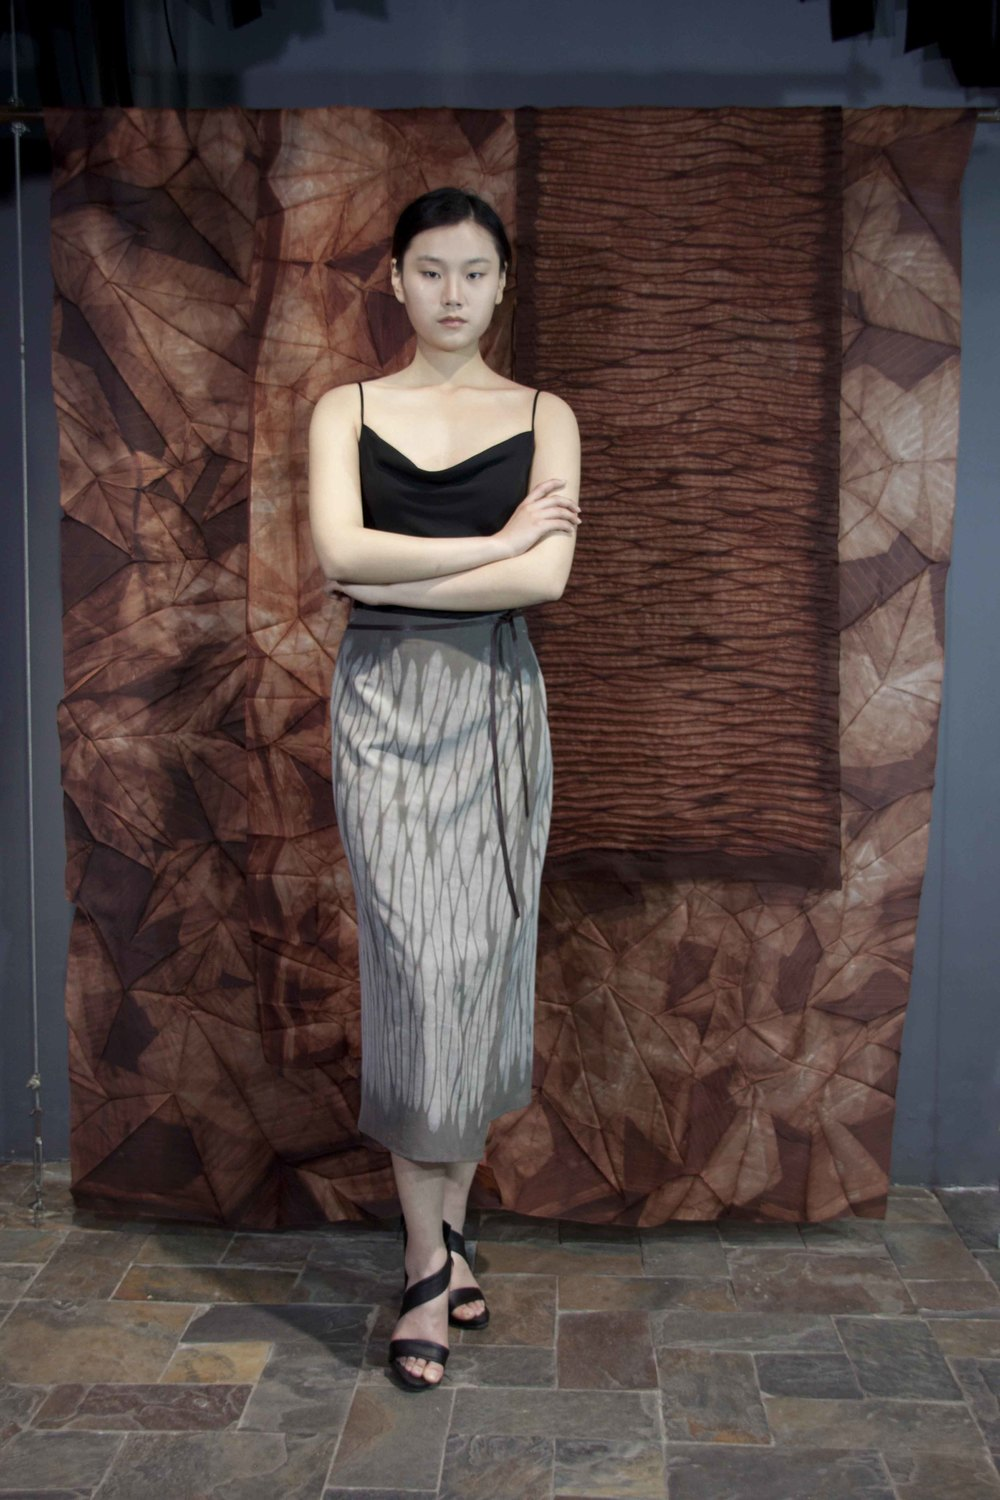 "Normal   0           false   false   false     EN-US   ZH-CN   X-NONE                                                                                   28-31Iron rust natural-dyed wrap-around skirt/ black silk top                                                                                                                                                                                                                                                                                                   /* Style Definitions */  table.MsoNormalTable 	{mso-style-name:""Table Normal""; 	mso-tstyle-rowband-size:0; 	mso-tstyle-colband-size:0; 	mso-style-noshow:yes; 	mso-style-priority:99; 	mso-style-qformat:yes; 	mso-style-parent:""""; 	mso-padding-alt:0in 5.4pt 0in 5.4pt; 	mso-para-margin-top:0in; 	mso-para-margin-right:0in; 	mso-para-margin-bottom:10.0pt; 	mso-para-margin-left:0in; 	line-height:115%; 	mso-pagination:widow-orphan; 	font-size:11.0pt; 	font-family:""Calibri"",""sans-serif""; 	mso-ascii-font-family:Calibri; 	mso-ascii-theme-font:minor-latin; 	mso-hansi-font-family:Calibri; 	mso-hansi-theme-font:minor-latin; 	mso-bidi-font-family:""Times New Roman""; 	mso-bidi-theme-font:minor-bidi;}                                                                                                                                                                                                                                                                                                        /* Style Definitions */  table.MsoNormalTable 	{mso-style-name:""Table Normal""; 	mso-tstyle-rowband-size:0; 	mso-tstyle-colband-size:0; 	mso-style-noshow:yes; 	mso-style-priority:99; 	mso-style-qformat:yes; 	mso-style-parent:""""; 	mso-padding-alt:0in 5.4pt 0in 5.4pt; 	mso-para-margin-top:0in; 	mso-para-margin-right:0in; 	mso-para-margin-bottom:10.0pt; 	mso-para-margin-left:0in; 	line-height:115%; 	mso-pagination:widow-orphan; 	font-size:11.0pt; 	font-family:""Calibri"",""sans-serif""; 	mso-ascii-font-family:Calibri; 	mso-ascii-theme-font:minor-latin; 	mso-hansi-font-family:Calibri; 	mso-hansi-theme-font:minor-latin; 	mso-bidi-font-family:""Times New Roman""; 	mso-bidi-theme-font:minor-bidi;}                                                                                                                                                                                                                                                                                                        /* Style Definitions */  table.MsoNormalTable 	{mso-style-name:""Table Normal""; 	mso-tstyle-rowband-size:0; 	mso-tstyle-colband-size:0; 	mso-style-noshow:yes; 	mso-style-priority:99; 	mso-style-qformat:yes; 	mso-style-parent:""""; 	mso-padding-alt:0in 5.4pt 0in 5.4pt; 	mso-para-margin-top:0in; 	mso-para-margin-right:0in; 	mso-para-margin-bottom:10.0pt; 	mso-para-margin-left:0in; 	line-height:115%; 	mso-pagination:widow-orphan; 	font-size:11.0pt; 	font-family:""Calibri"",""sans-serif""; 	mso-ascii-font-family:Calibri; 	mso-ascii-theme-font:minor-latin; 	mso-hansi-font-family:Calibri; 	mso-hansi-theme-font:minor-latin; 	mso-bidi-font-family:""Times New Roman""; 	mso-bidi-theme-font:minor-bidi;}"